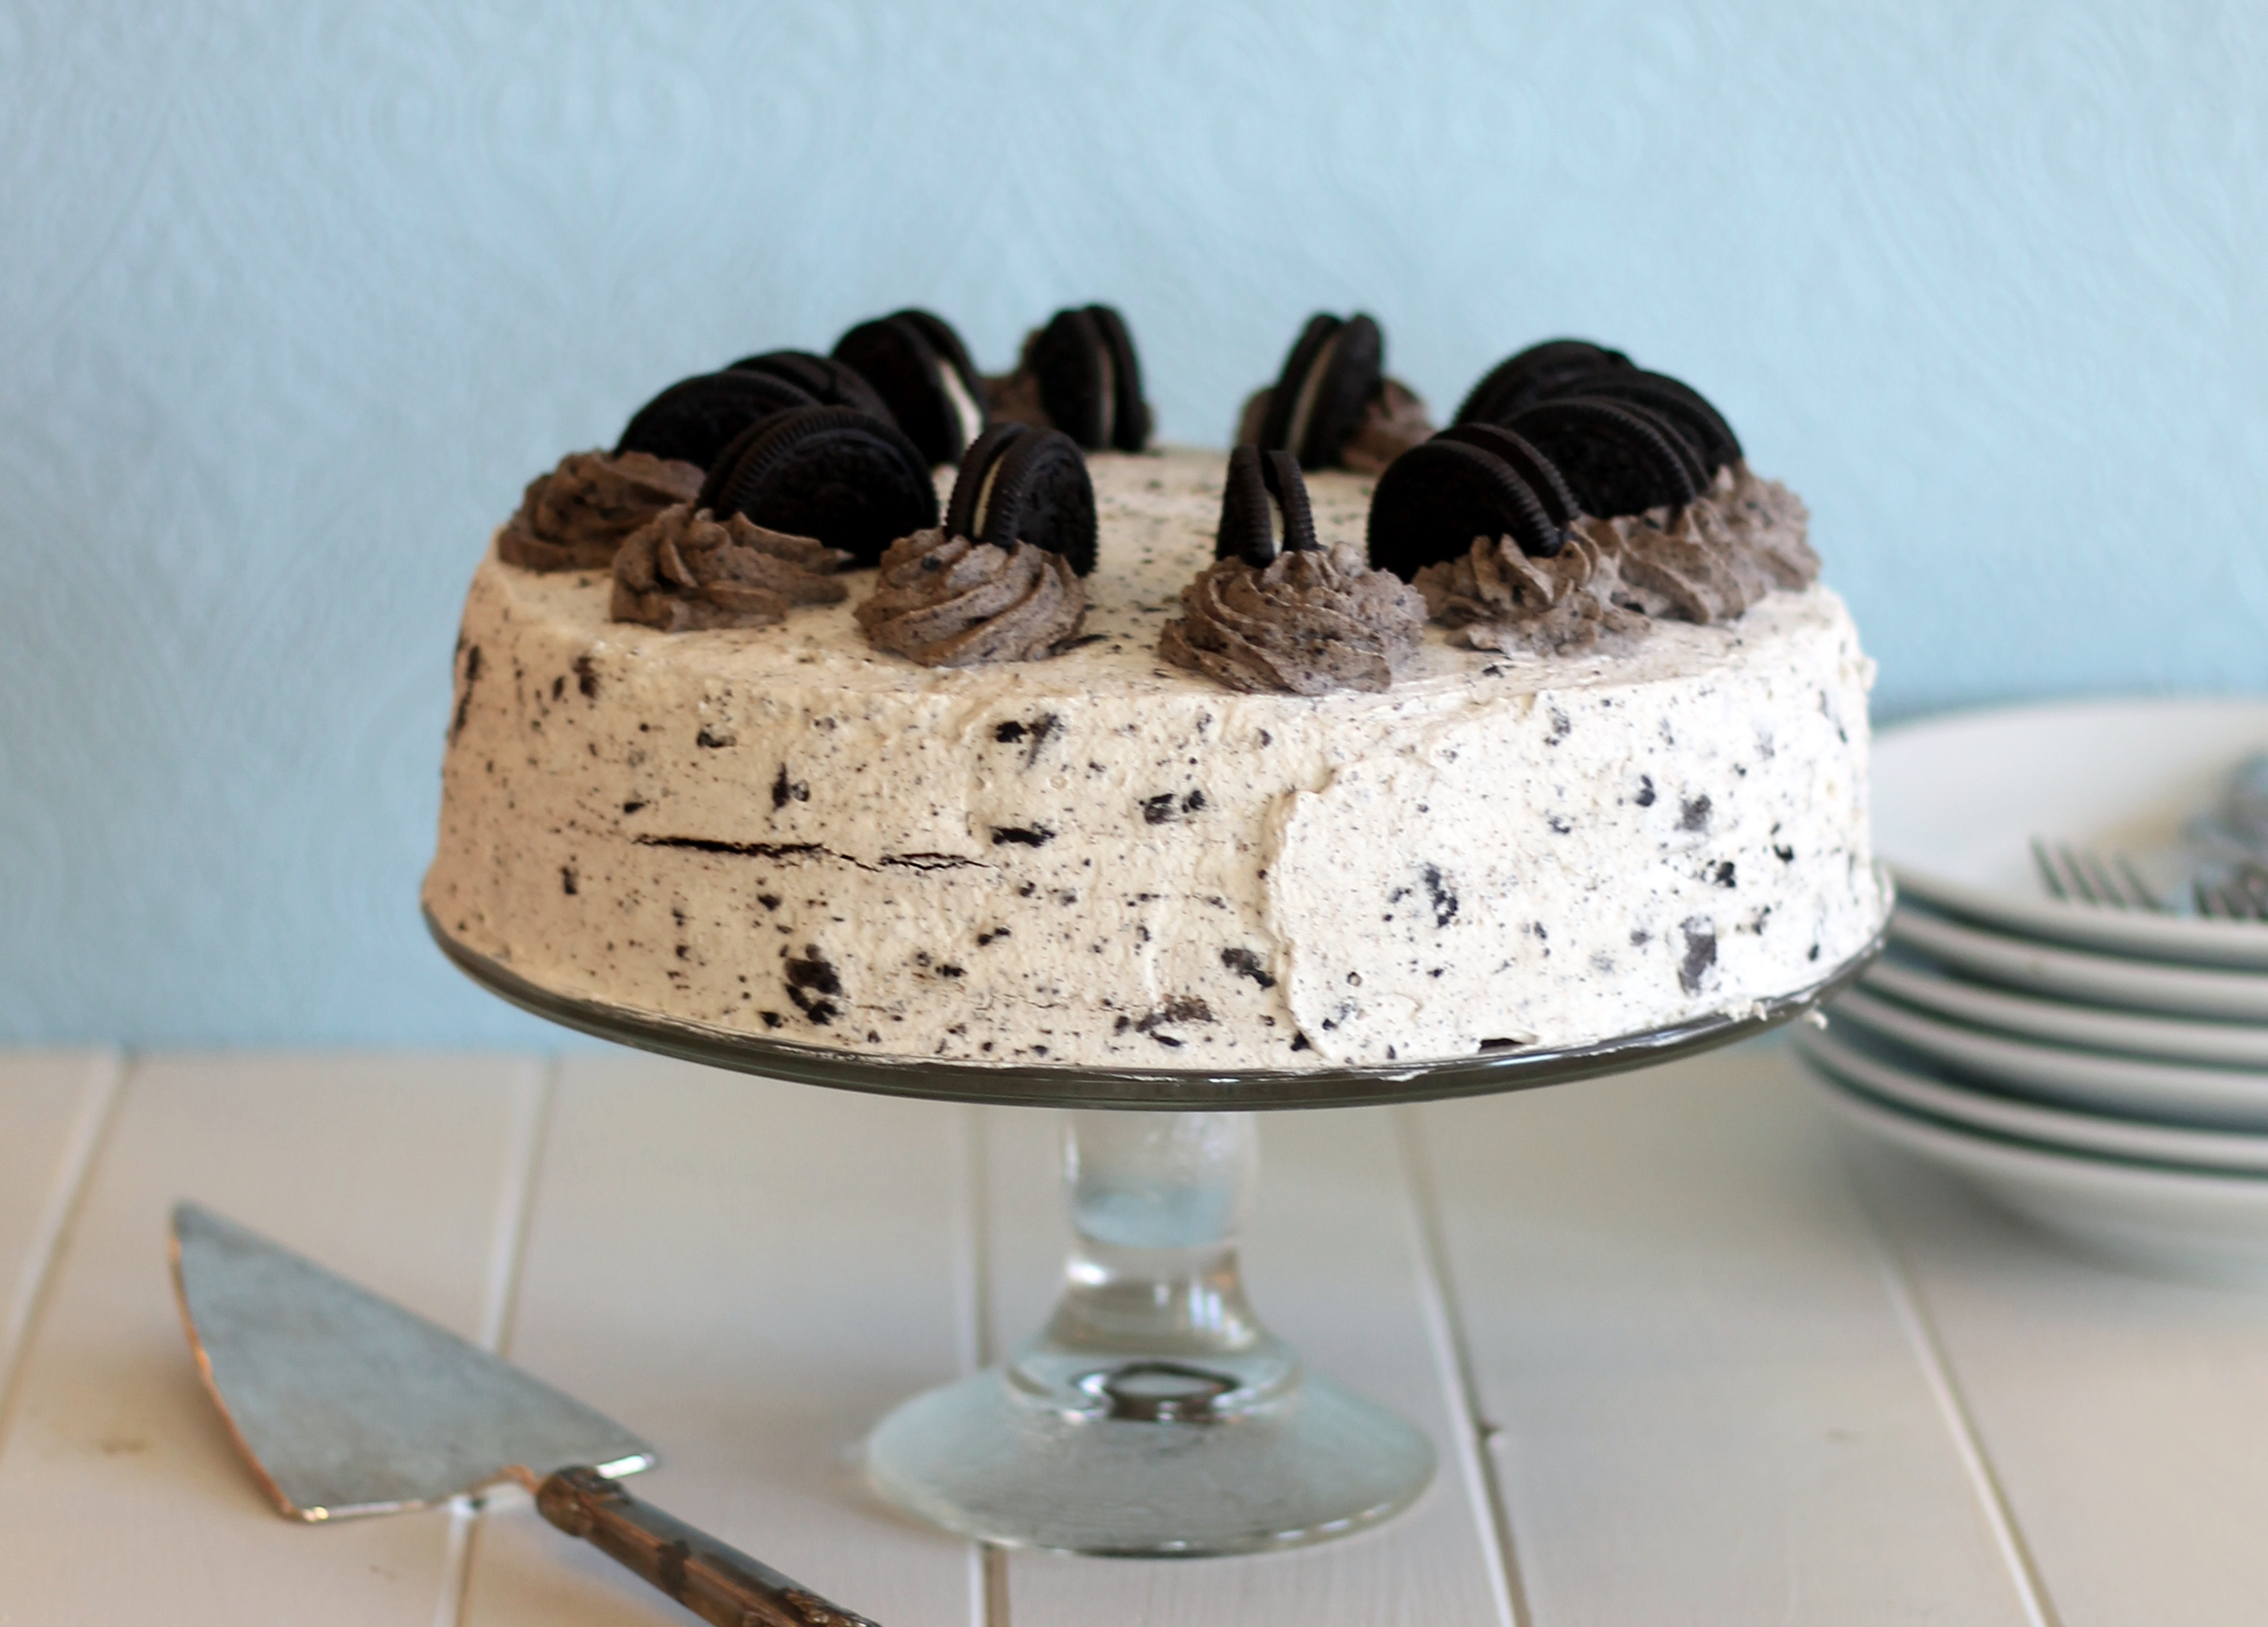 Sep 12,  · Separate the cream from oreos using a knife. Place cookies onto a plate, and creams into a bowl. Line a 4-quart mixing bowl with plastic wrap. One by one, dip the separated oreo pieces into the milk and place around the bowl according to the video. In a medium bowl, mix cream cheese and sugar until smooth/5(29).